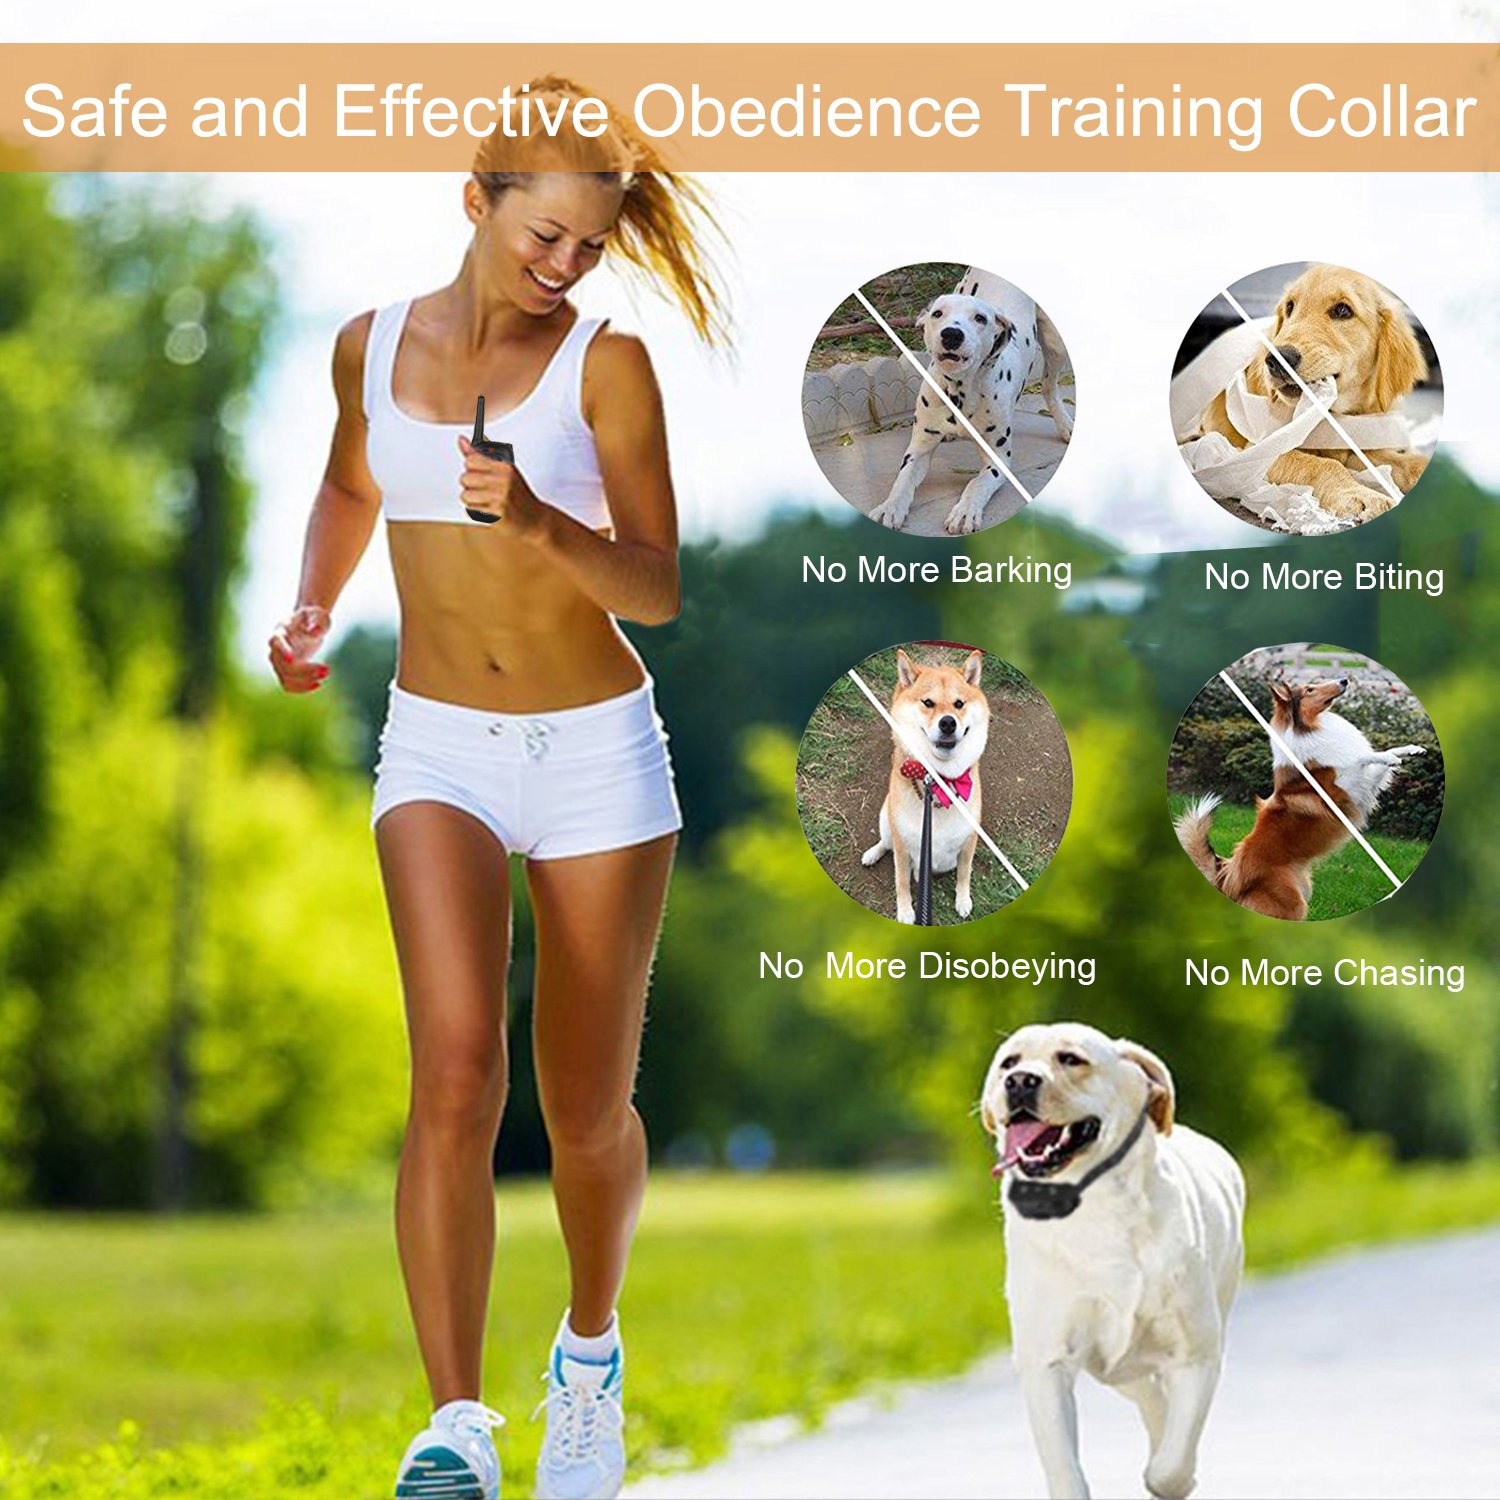 Fettish Dog Training Collar Rechargeable & Waterproof Electric Remote Dog Shock Collar with LED Light Beep Vibration Safety Shock Modes for Small/Medium/Large Training Collars by Fettish (Image #6)